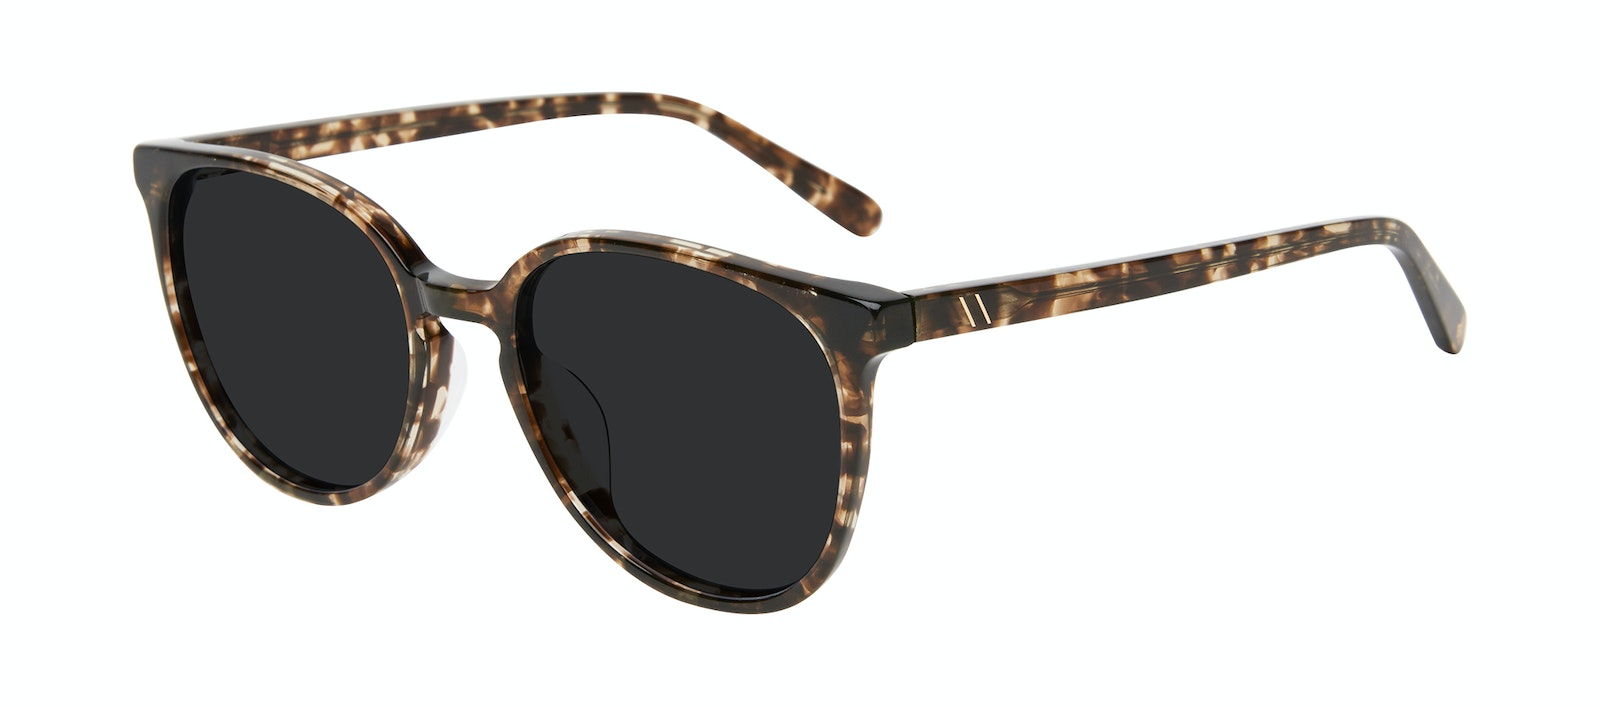 Affordable Fashion Glasses Round Sunglasses Women Impression Leopard Tilt